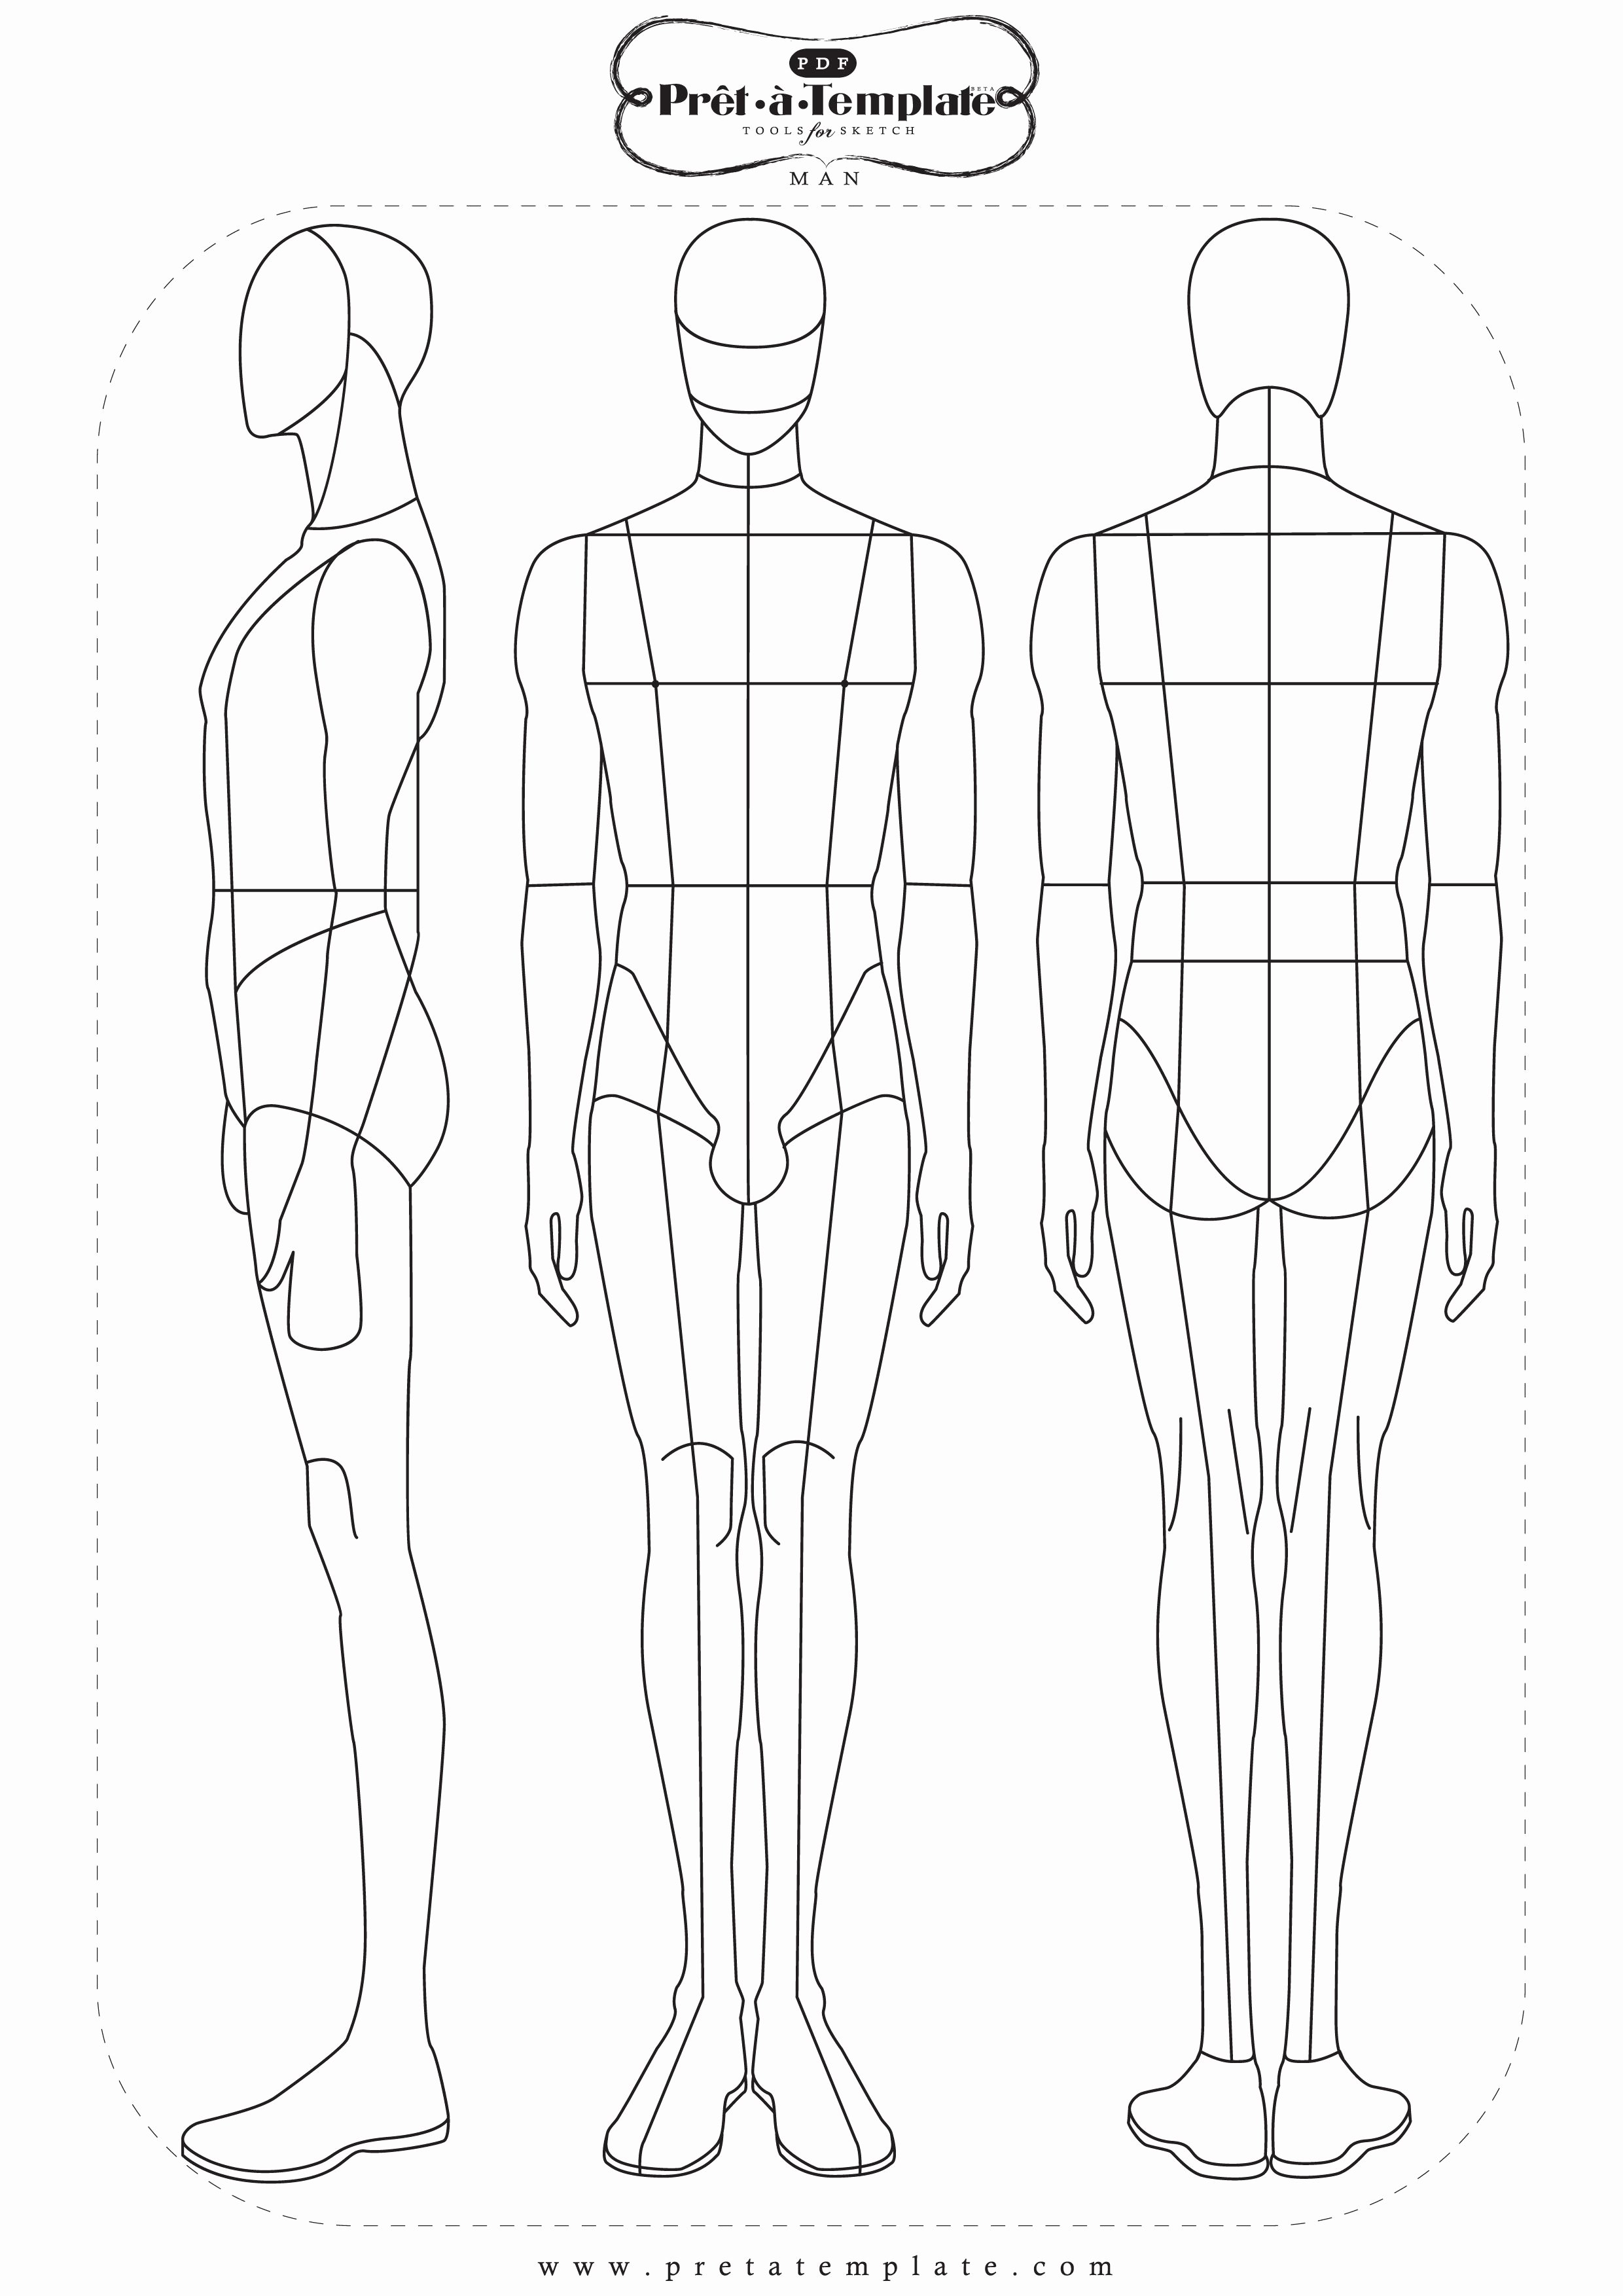 Costume Design Template Male Luxury Fashion Templates Fashion App Pret à Template Available